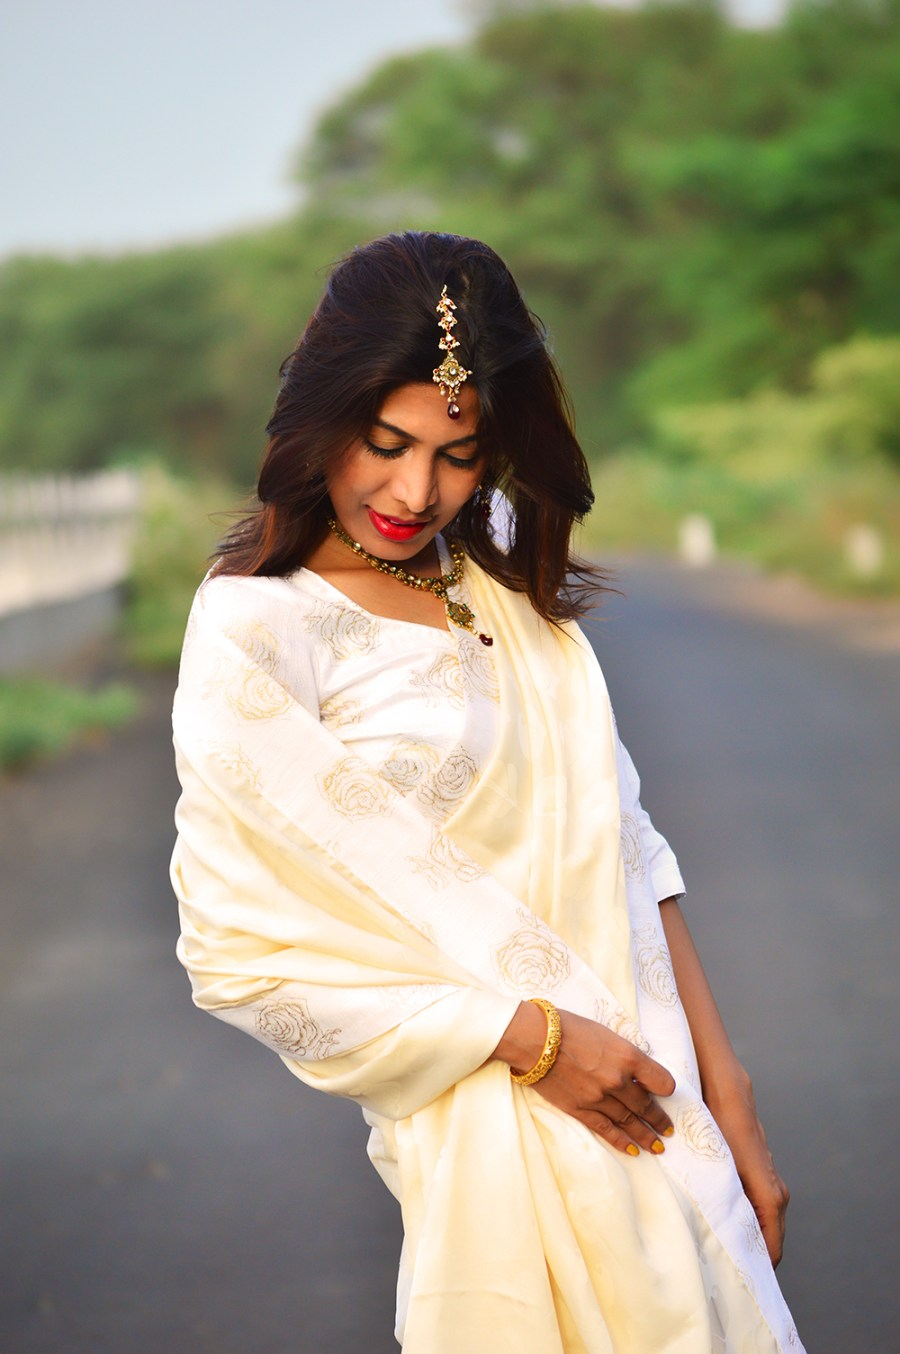 Fashion, Style, Indian Fashion Blogger, OOTD, Street Style, Photography, Saree, indian Ethnic Wear, Sareez, Indian Street Fashion